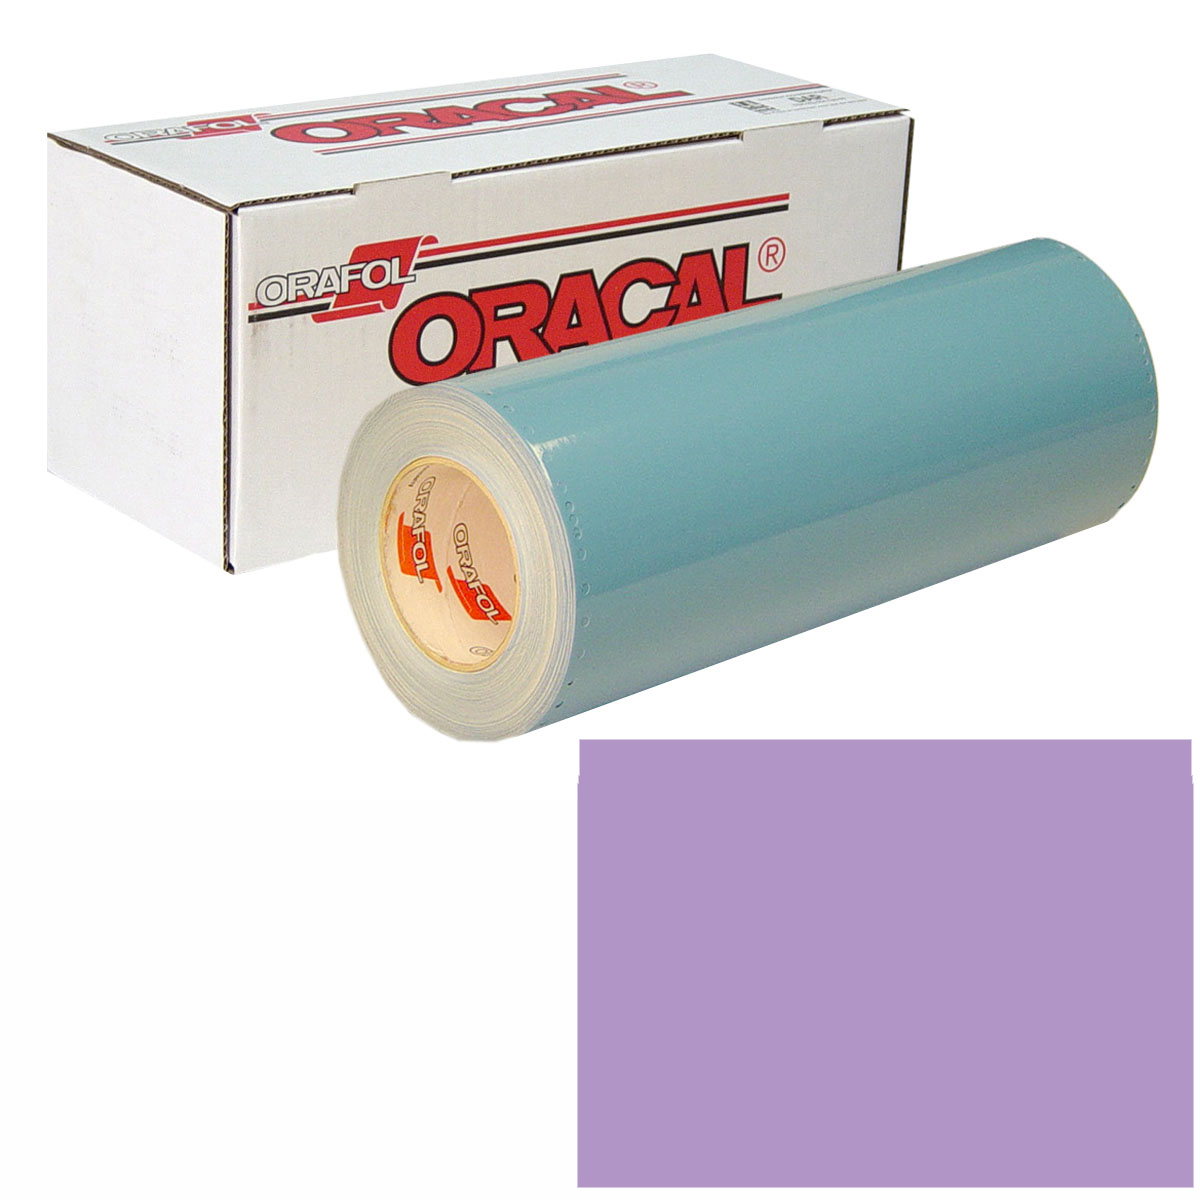 ORACAL 751 15in X 50yd 042 Lilac